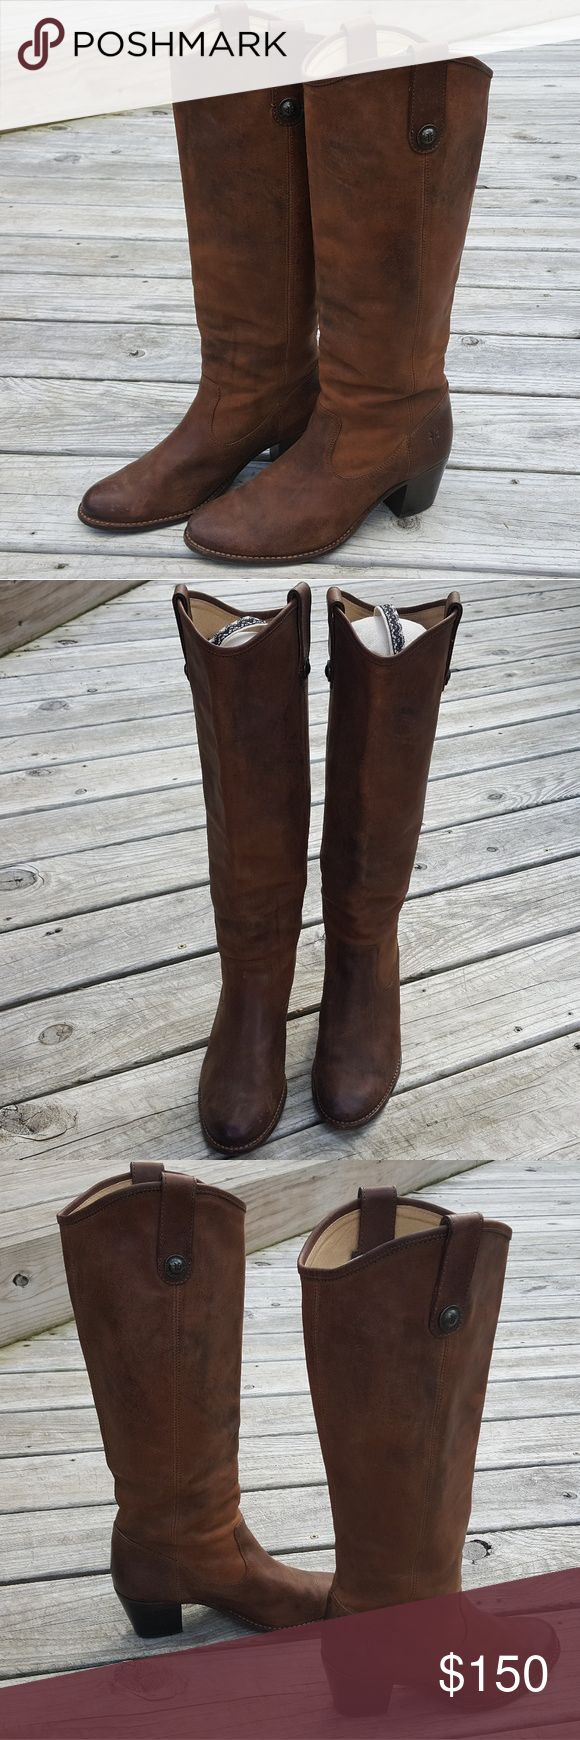 Frye Melissa Distressed Button Casual Tall Boot These gorgeous Frye boots come in a distressed brown leather and are in good pre-owned condition. There are some scuffs as can be seen in the photos. Size 8.5. Frye Shoes Heeled Boots